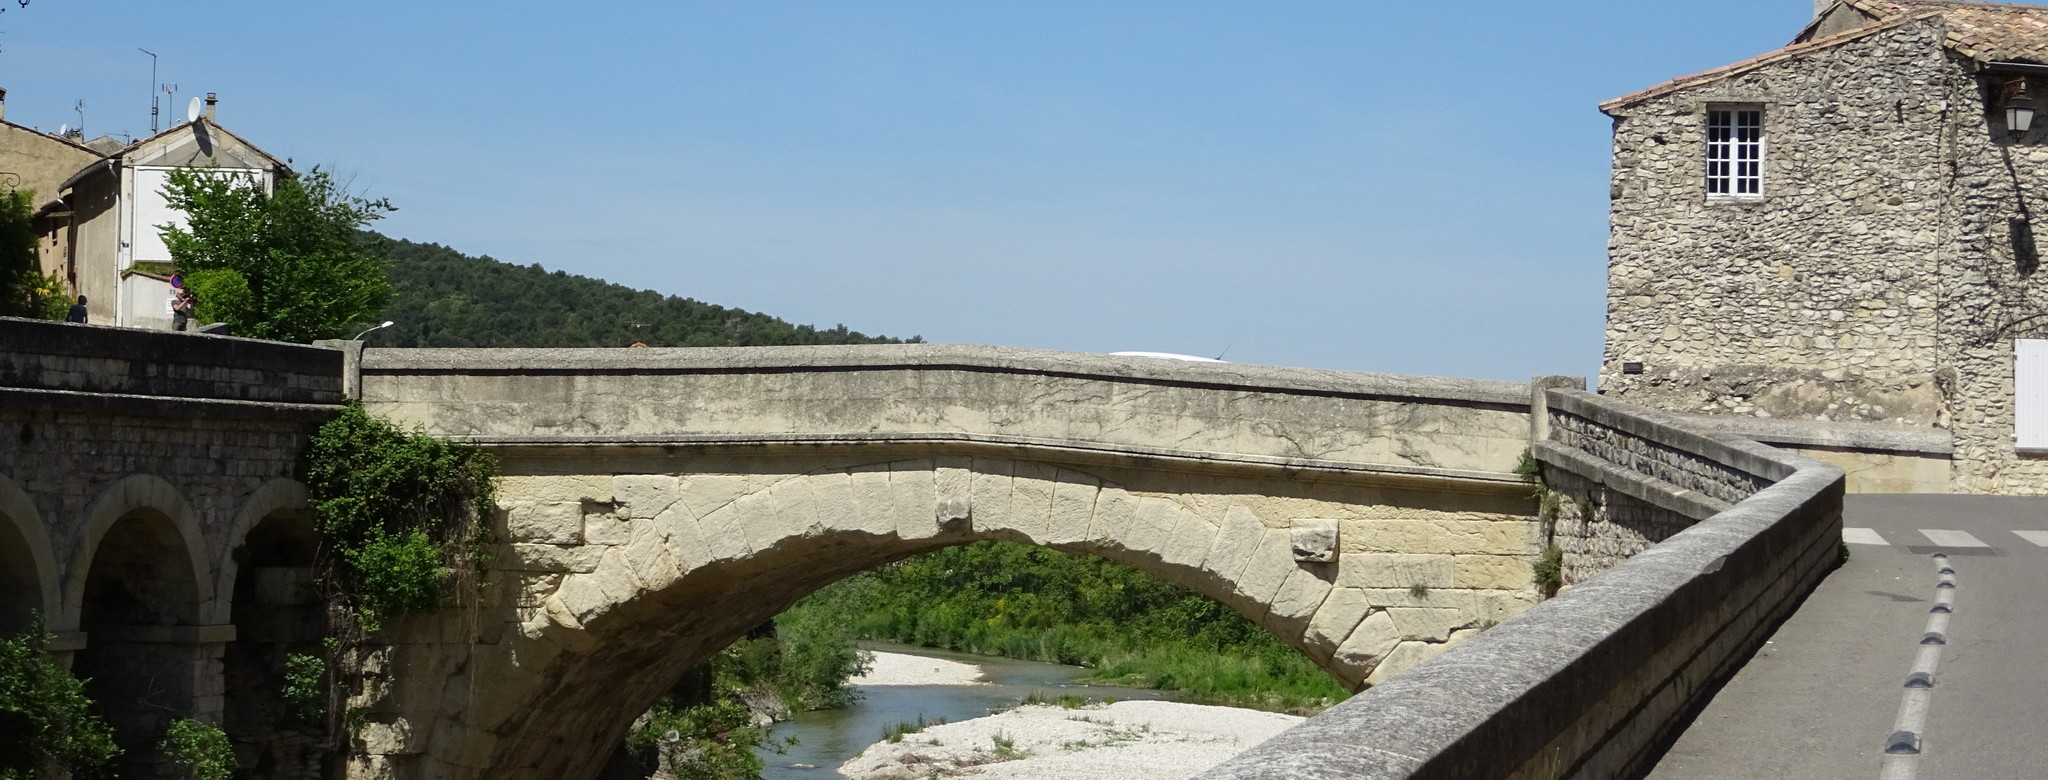 Roman bridge in Vaison-la-Romaine.